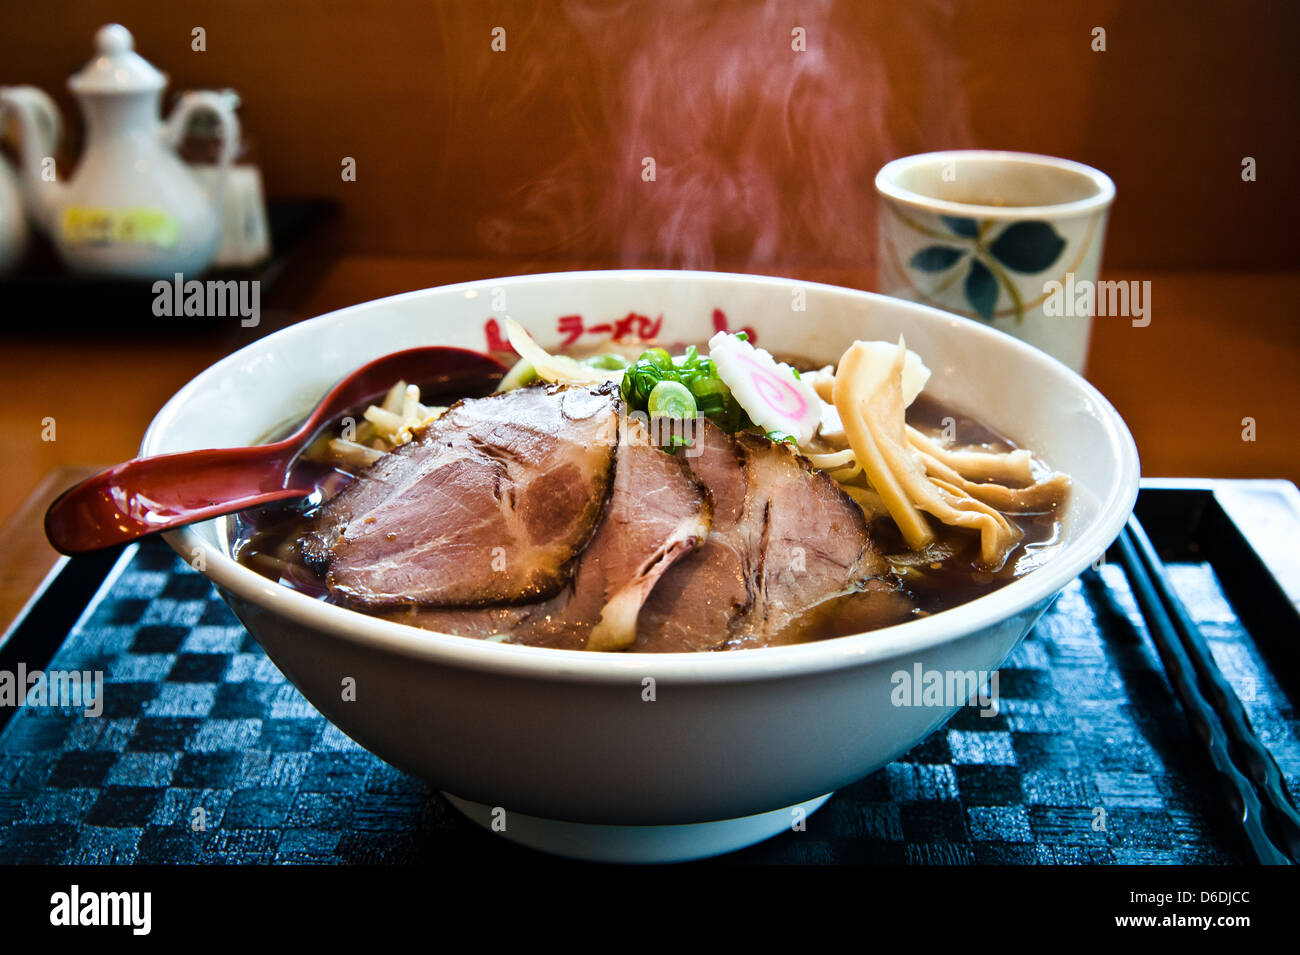 A Hot Bowl Of Miso Ramen Japanese Style Noodles In Pork